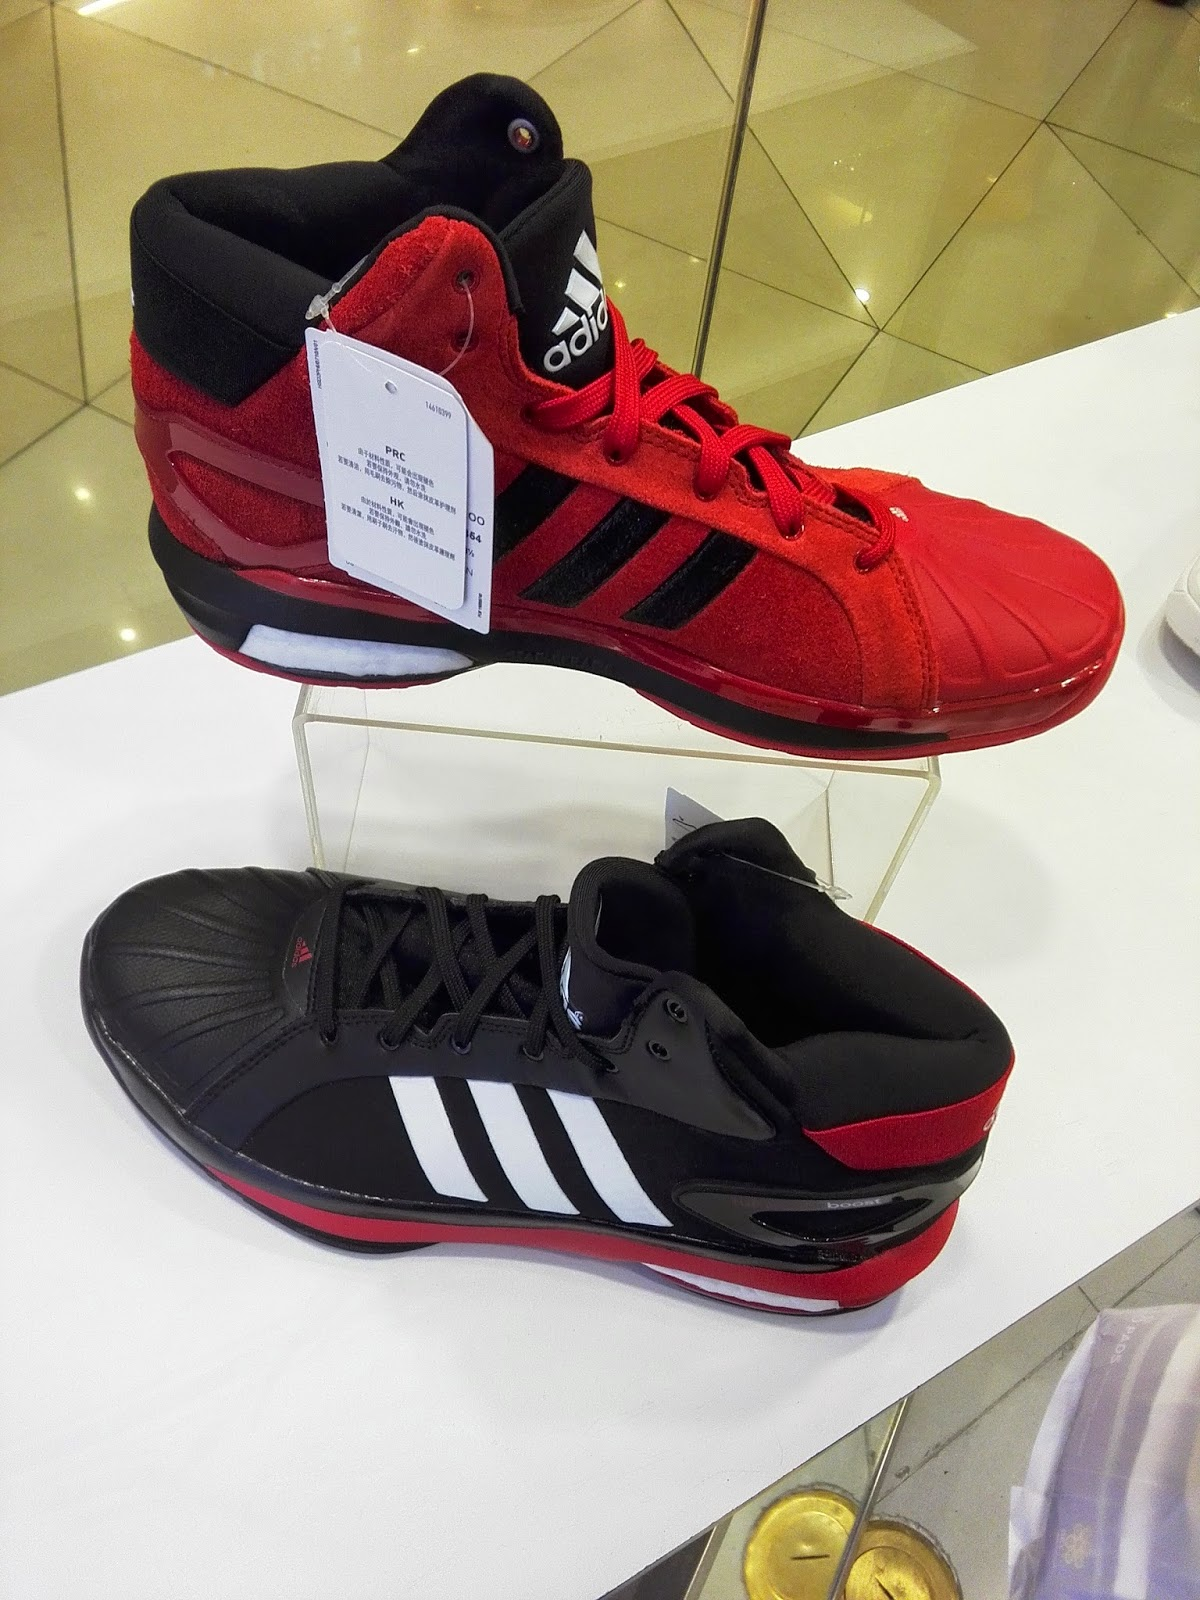 Black Red Mens Adidas Adizero Knit 20 Running Sneaker Shoes New Colorway